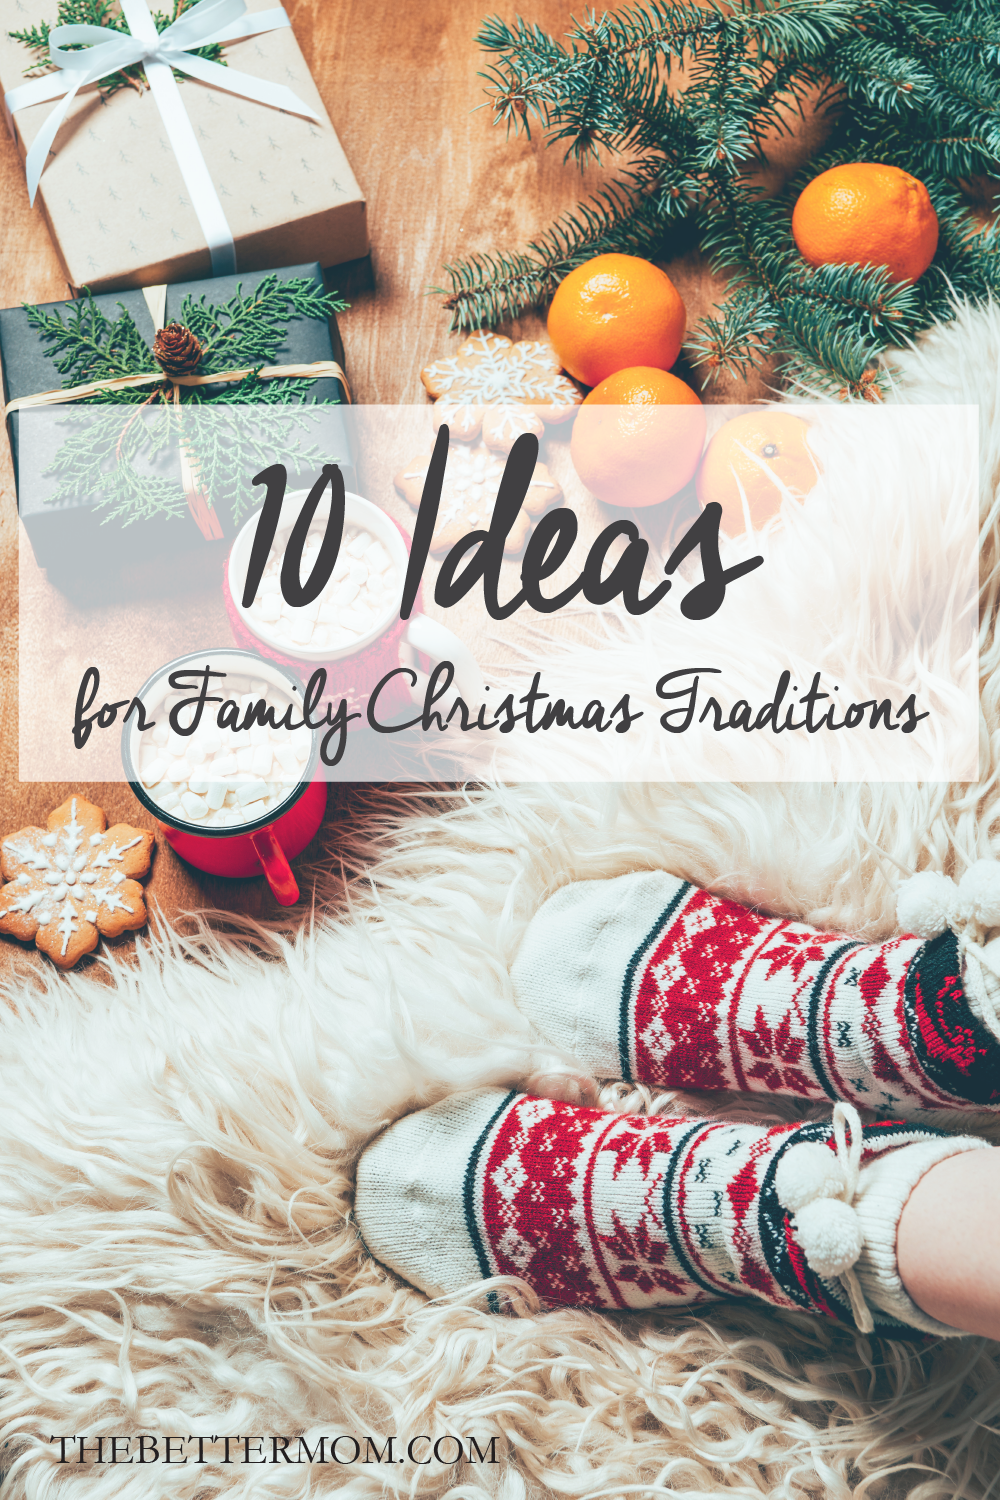 Are you looking for ways to make Christmas more meaningful? In a season steeped in tradition, we've got a few new ones to share that are certain to add more fun and more purpose to your holiday celebration.